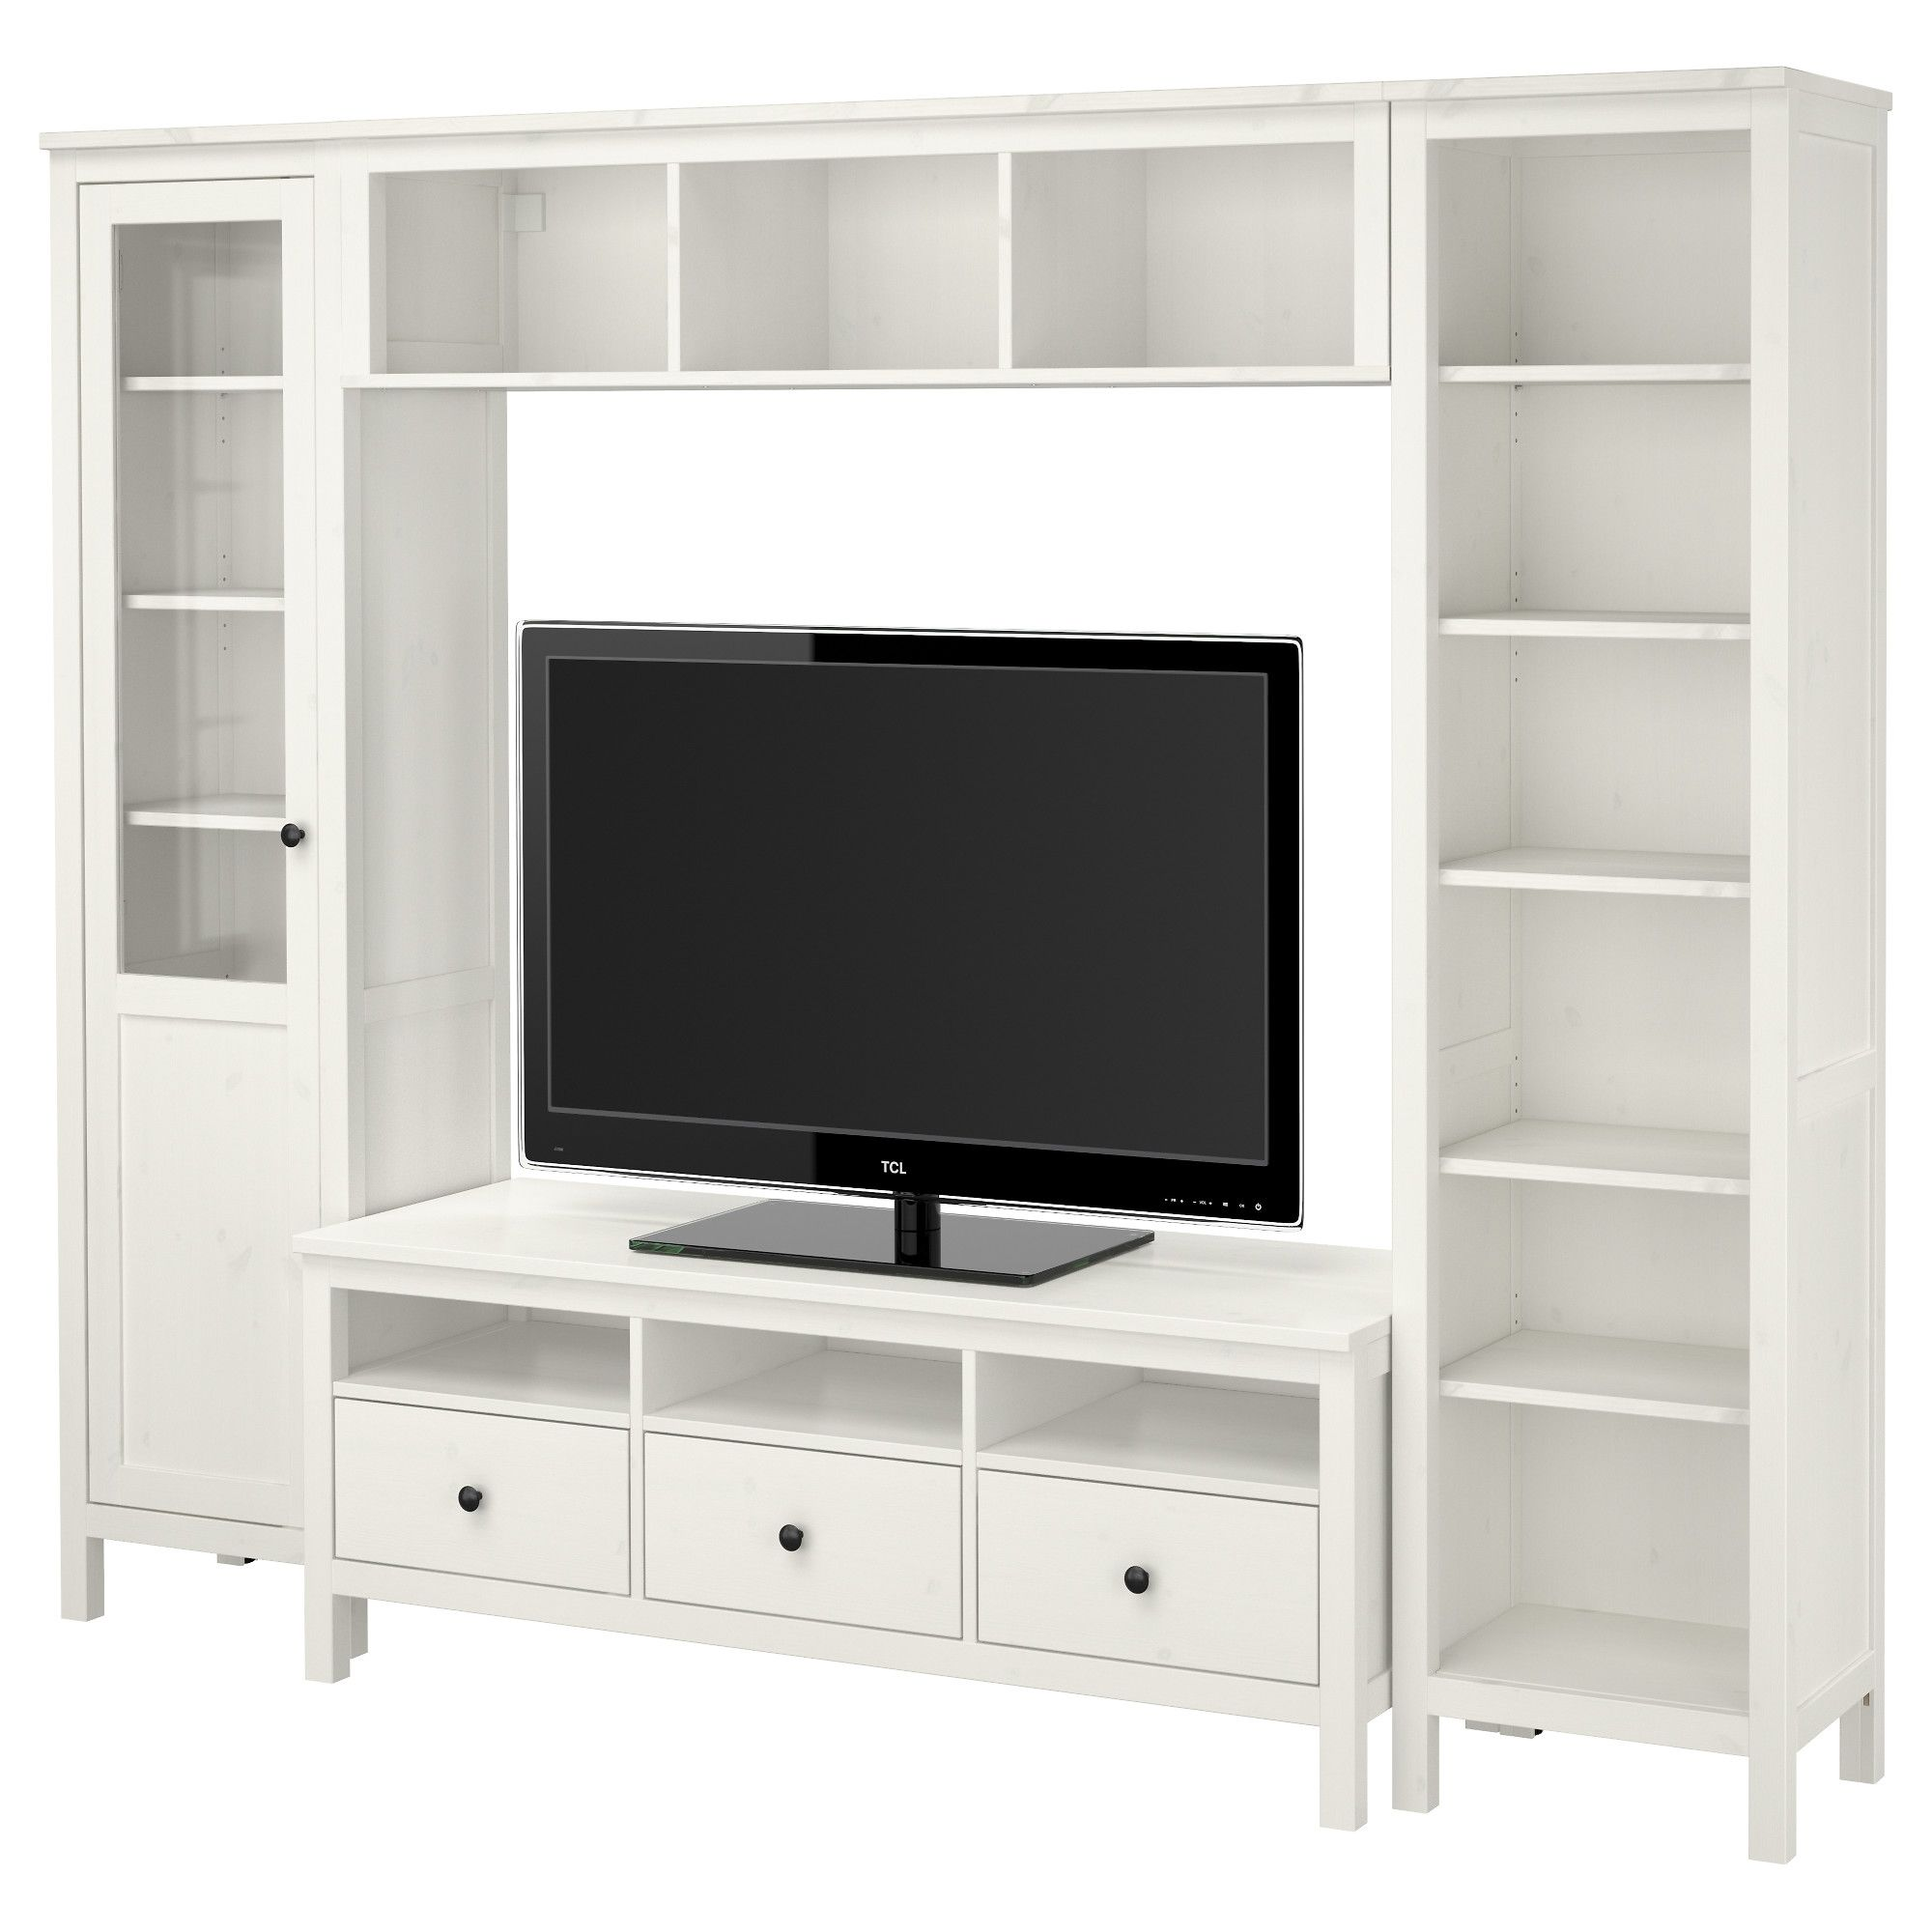 hemnes tv storage combination white stain ikea width. Black Bedroom Furniture Sets. Home Design Ideas